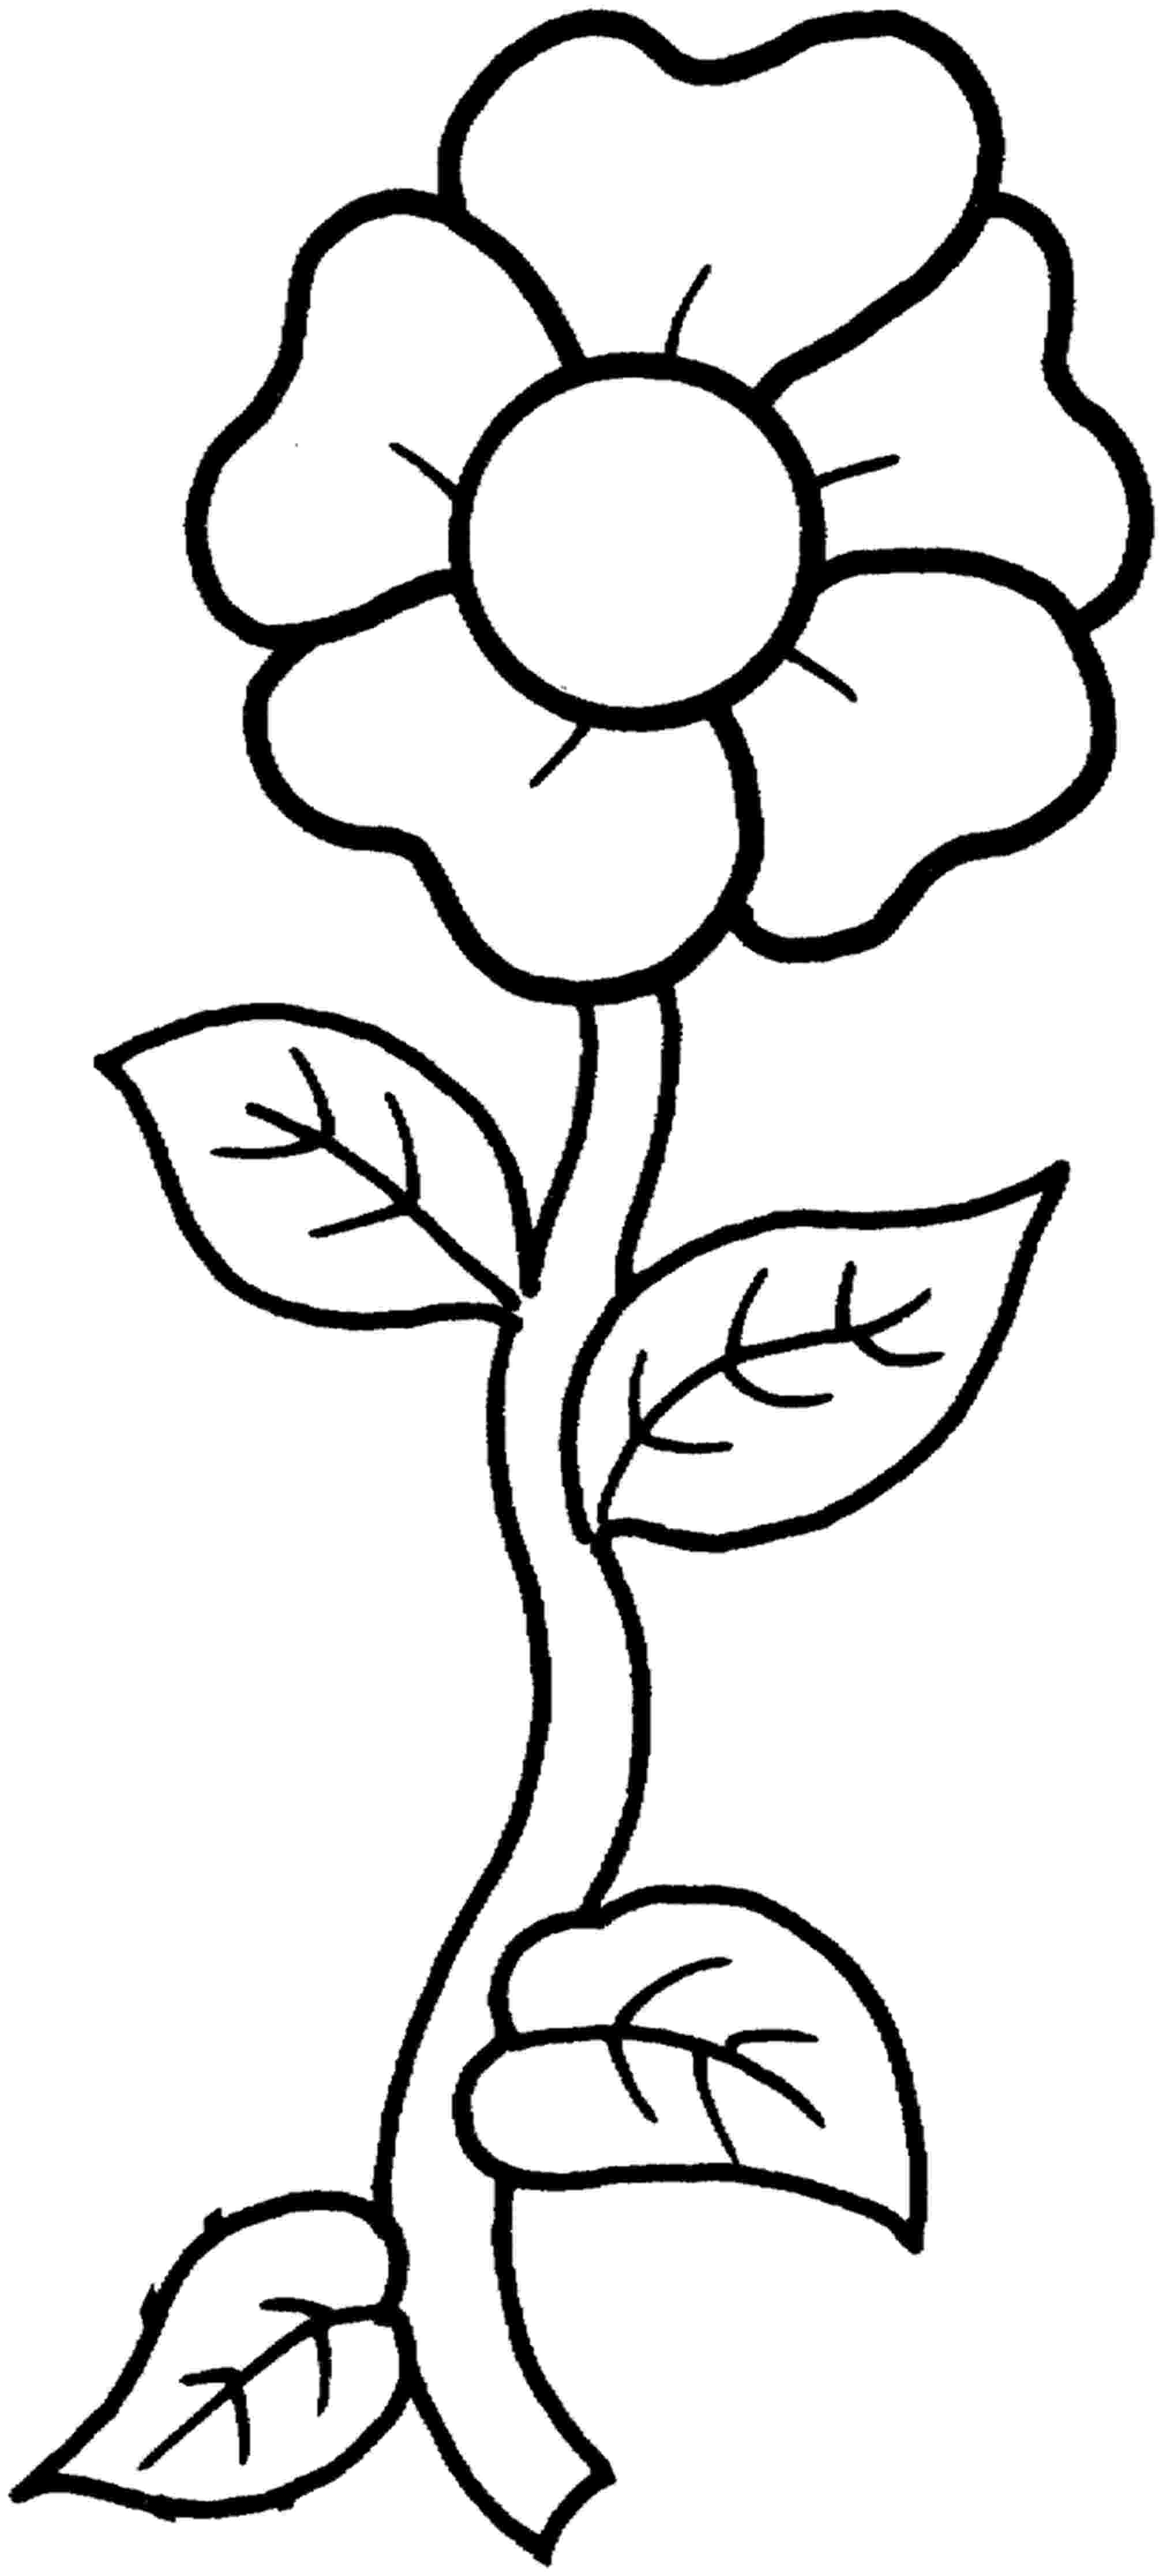 printable roses roses coloring pages getcoloringpagescom roses printable